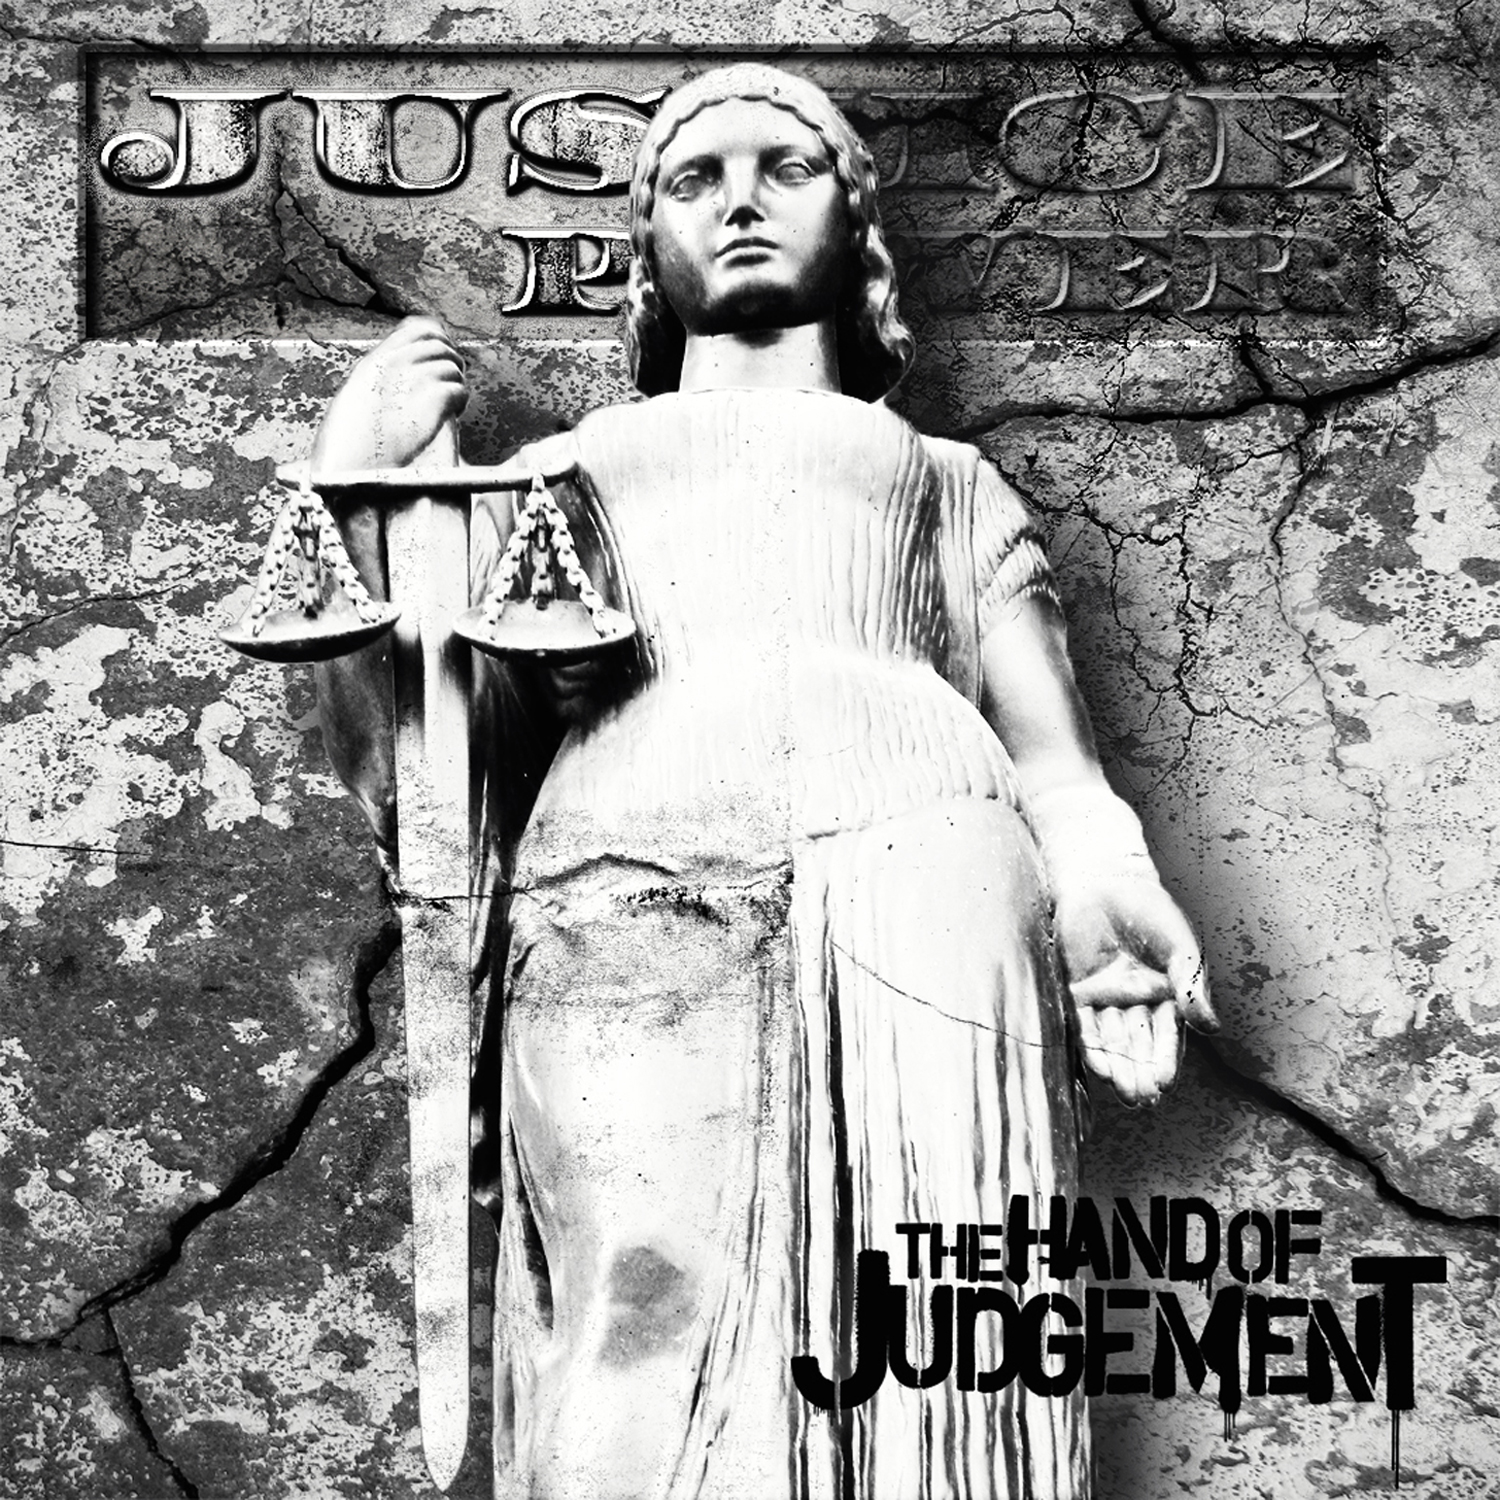 Jus-P - Hand of Judgement now in stores.